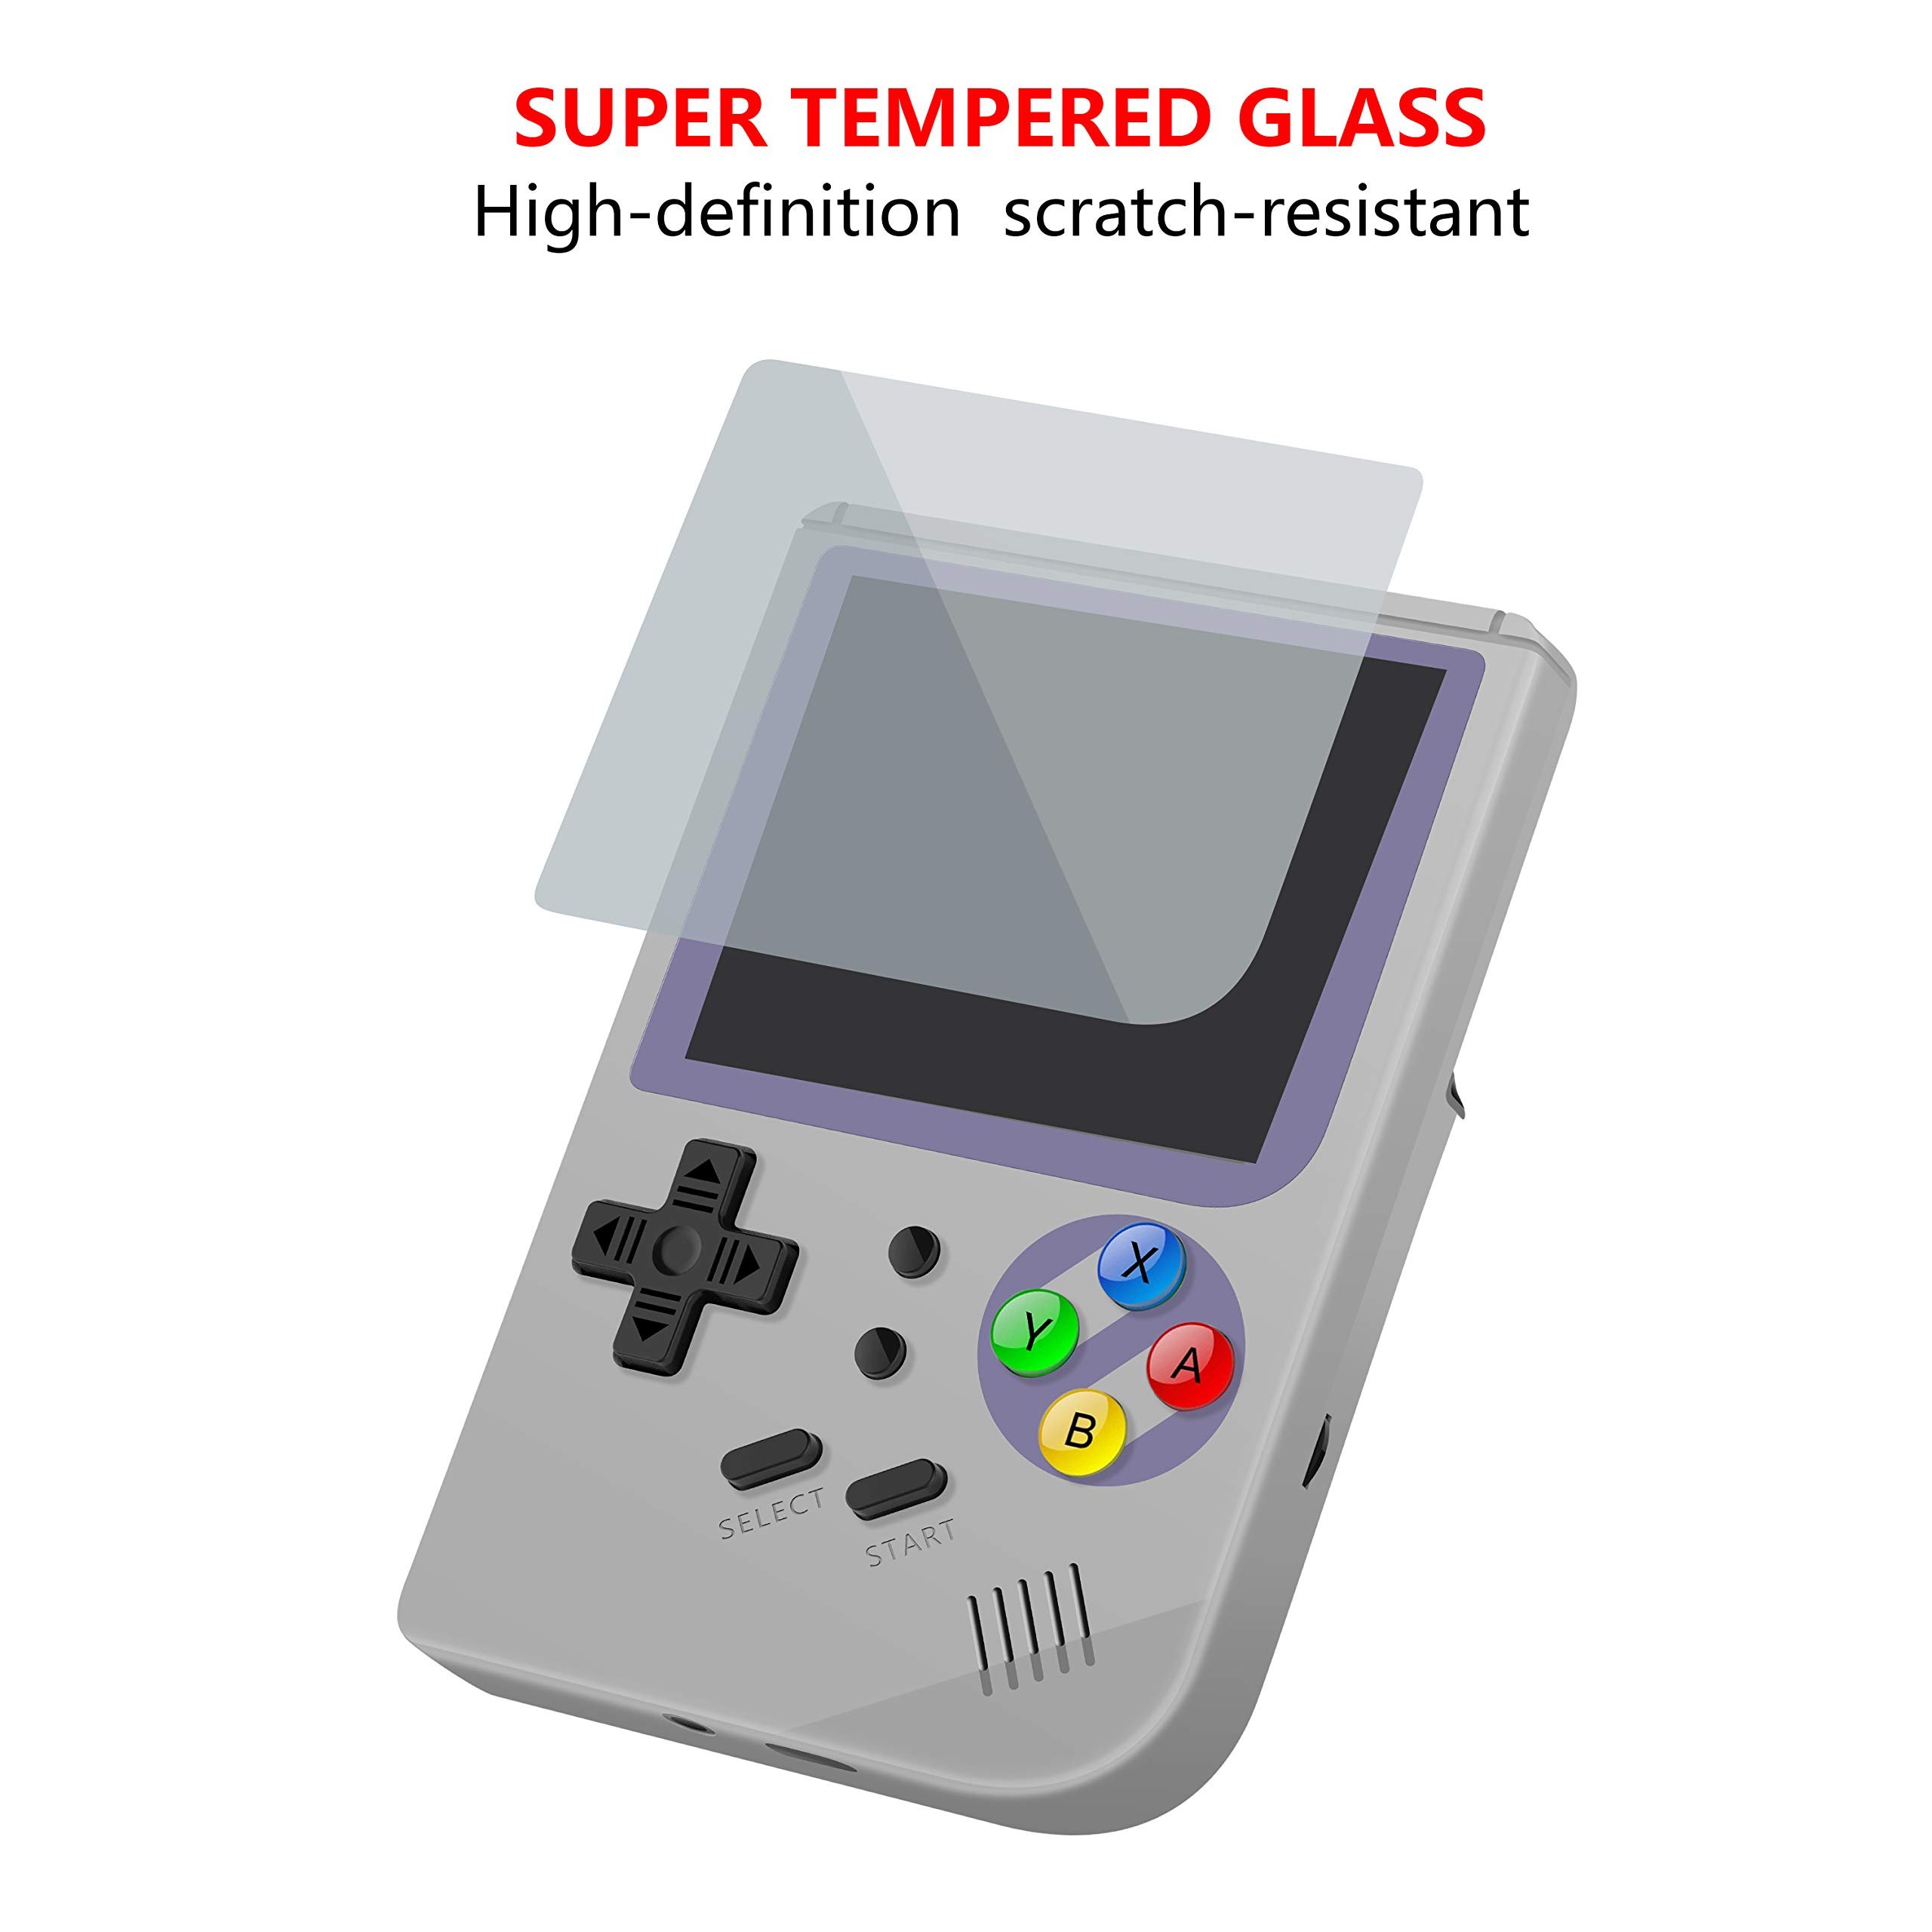 MJKJ Handheld Game Console ,RG300 Retro Game Console OpenDingux Tony System , Free with 32G TF Card Built-in 3007 Classic Game Console 3 Inch HD Screen Portable Video Game Console - Gray by MJKJ (Image #3)